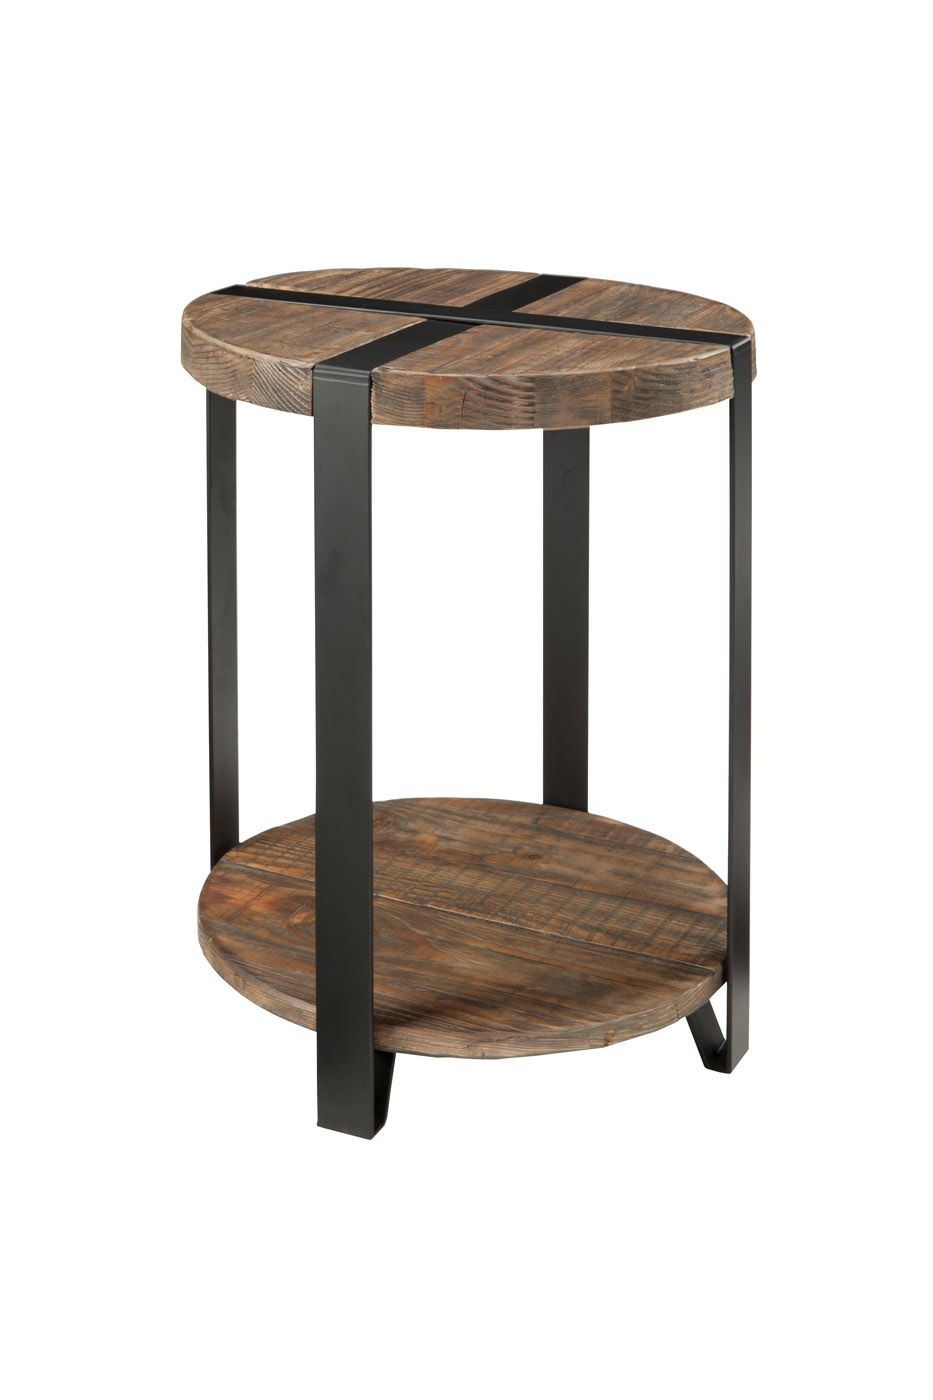 the modesto round accent table perfect for any small space this tables spaces inch diameter offers two useful levels metal bands are flush with silver end bar stool set bench seat